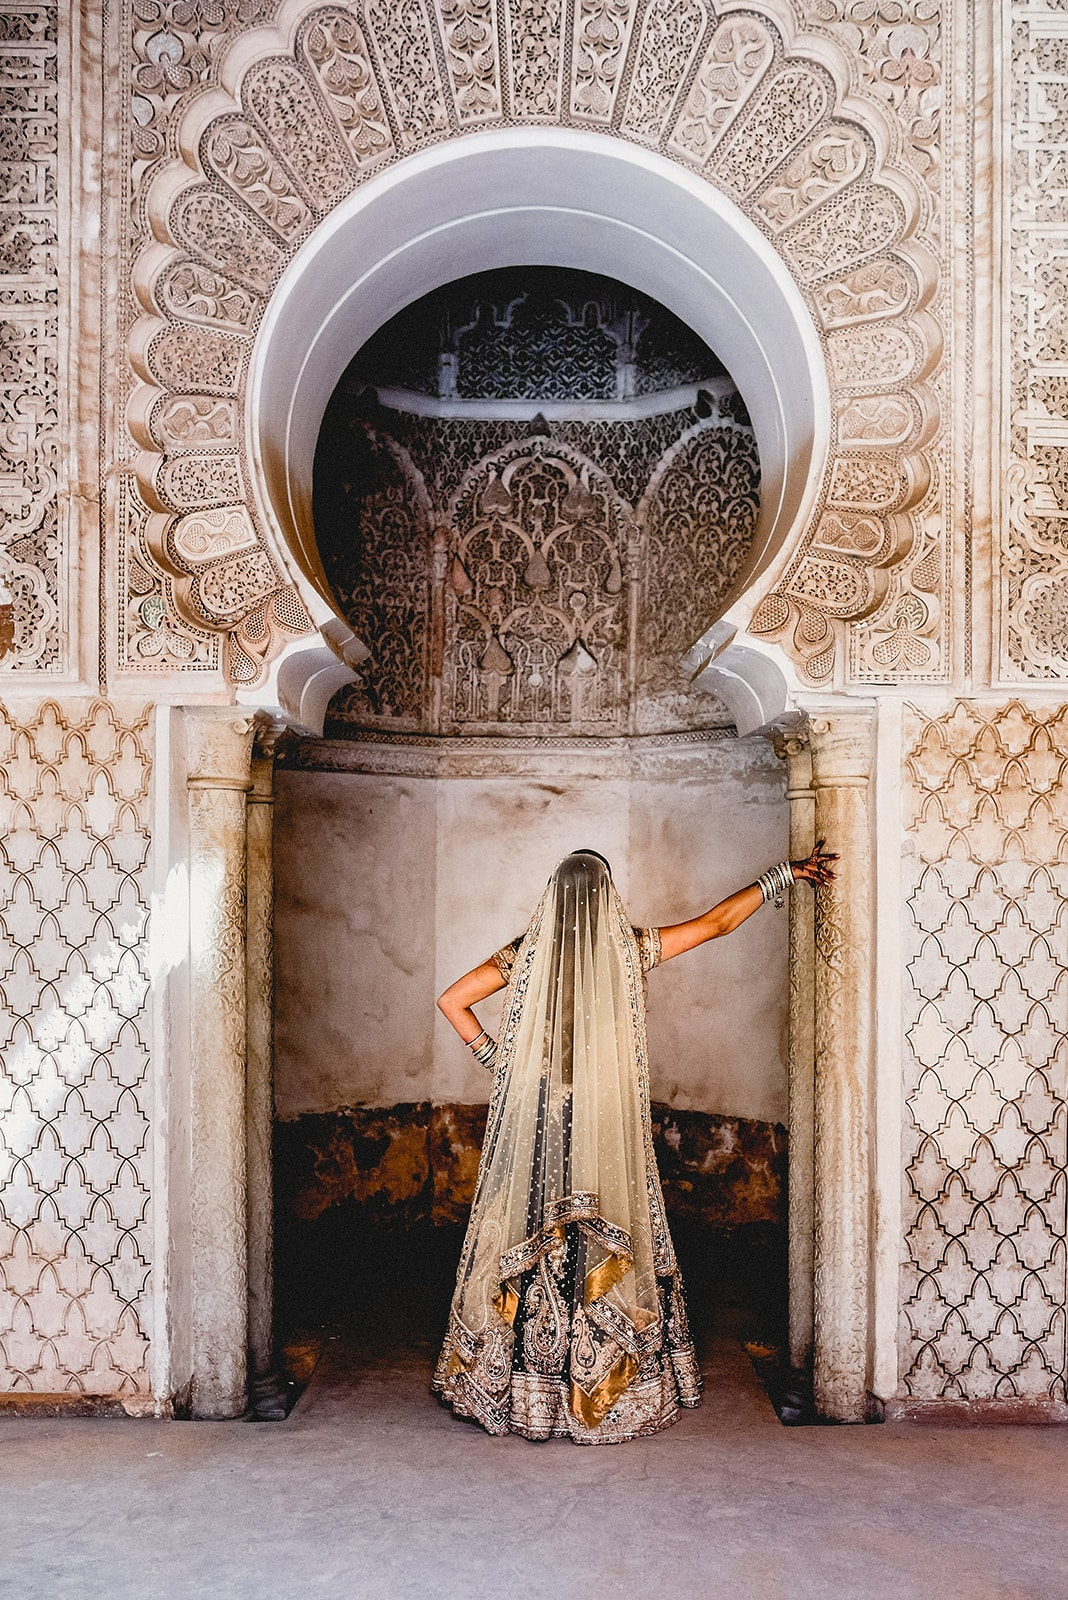 Bride admires the carvings in an archway at Ben Youssef Madrassa